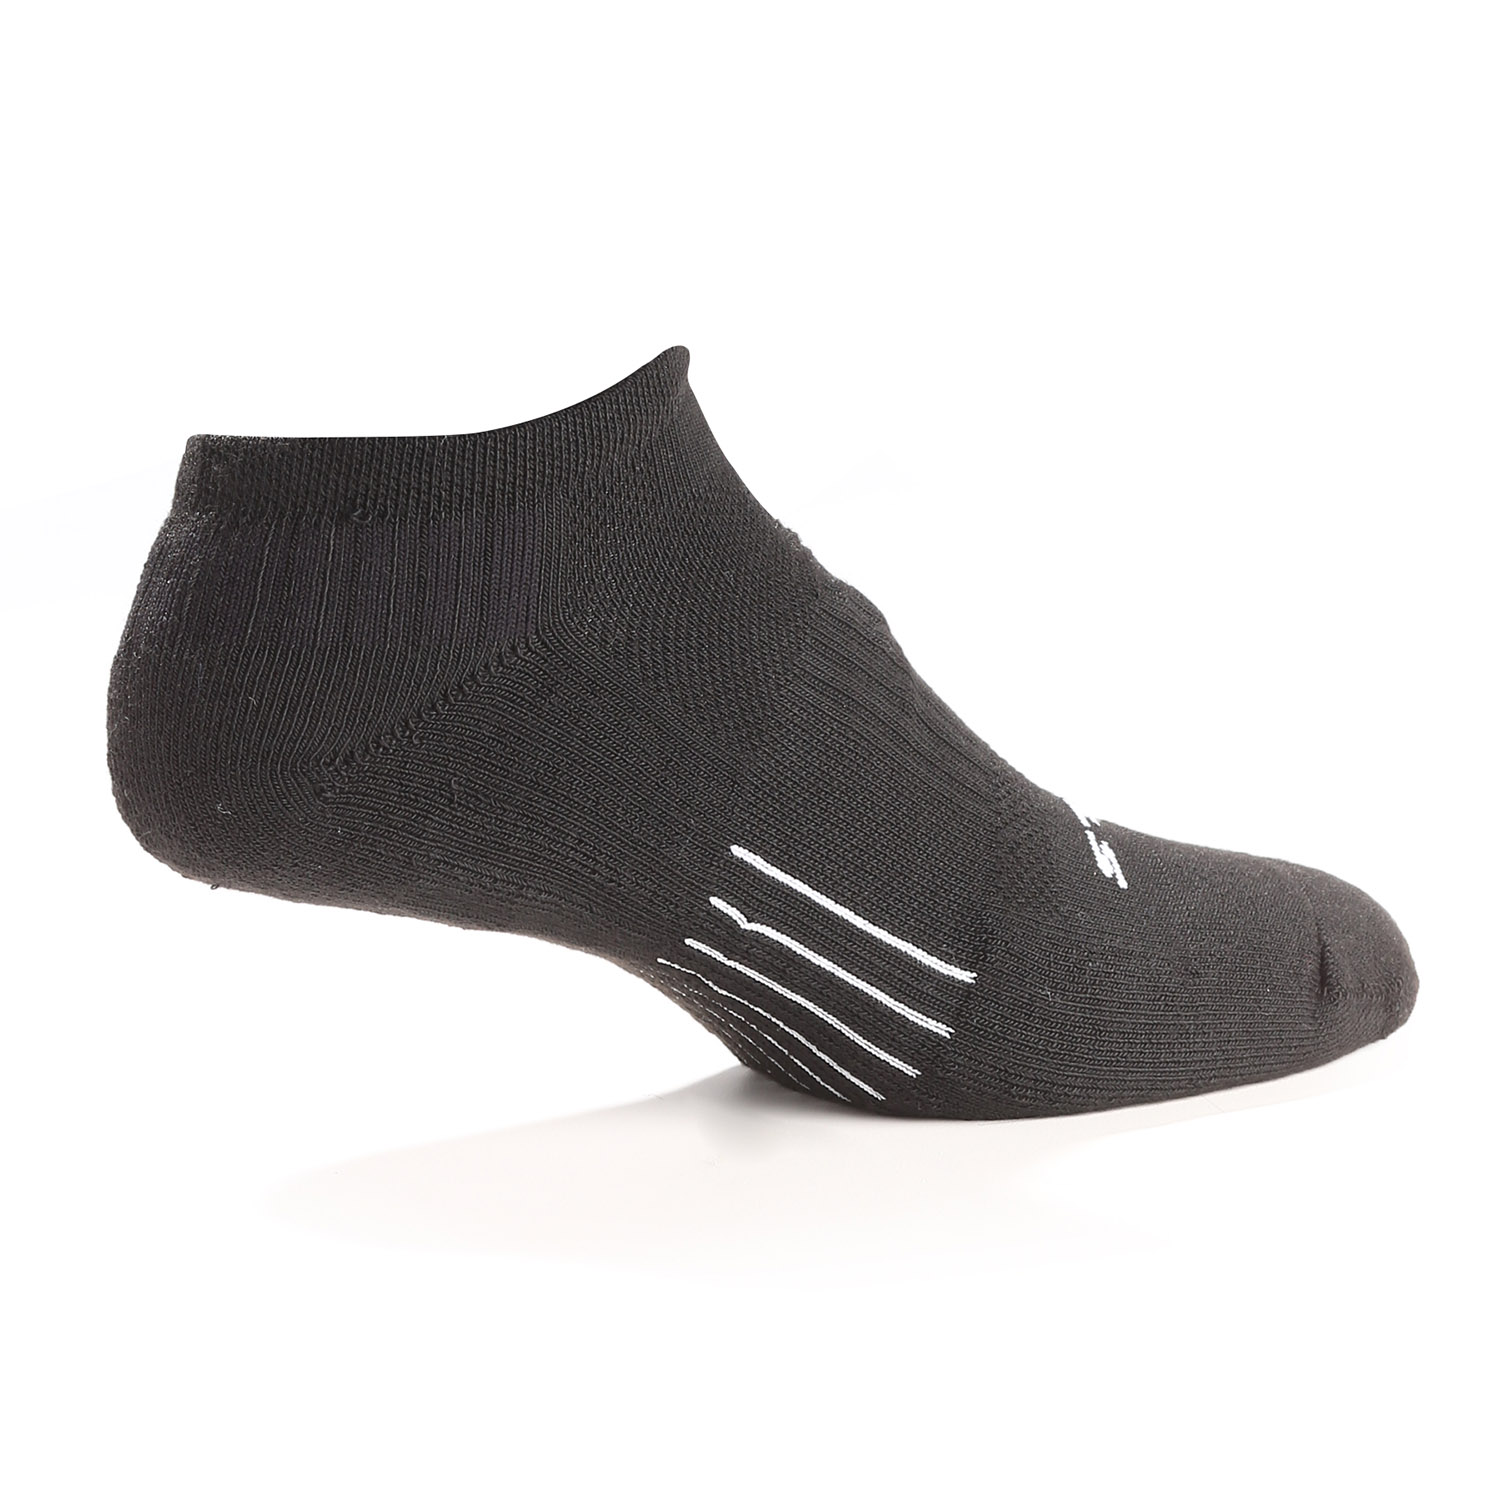 Galls Unisex Athletic Low Cut Sock (3 Pack)